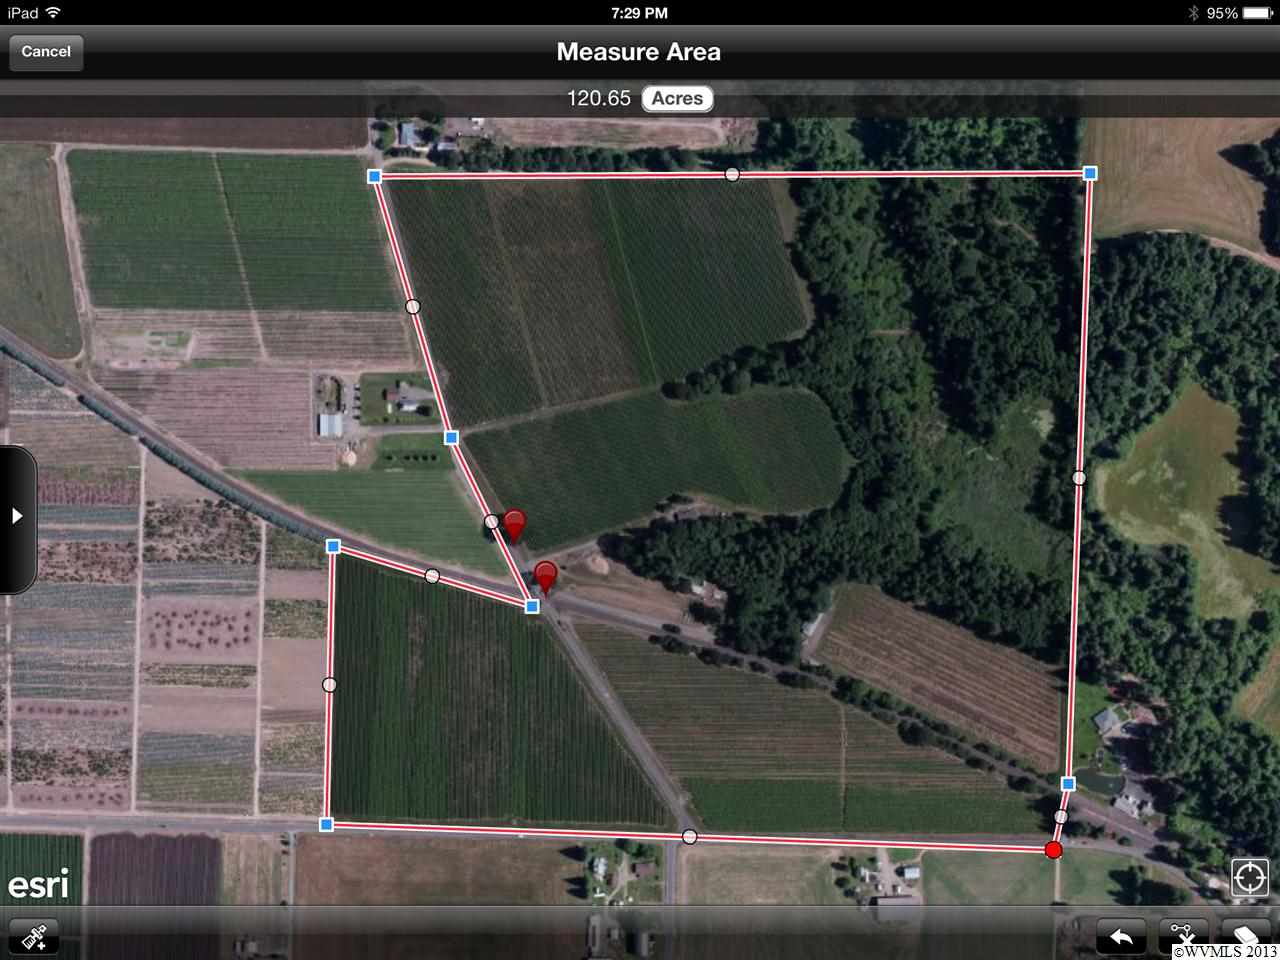 115.85 acres in Hillsboro, Oregon